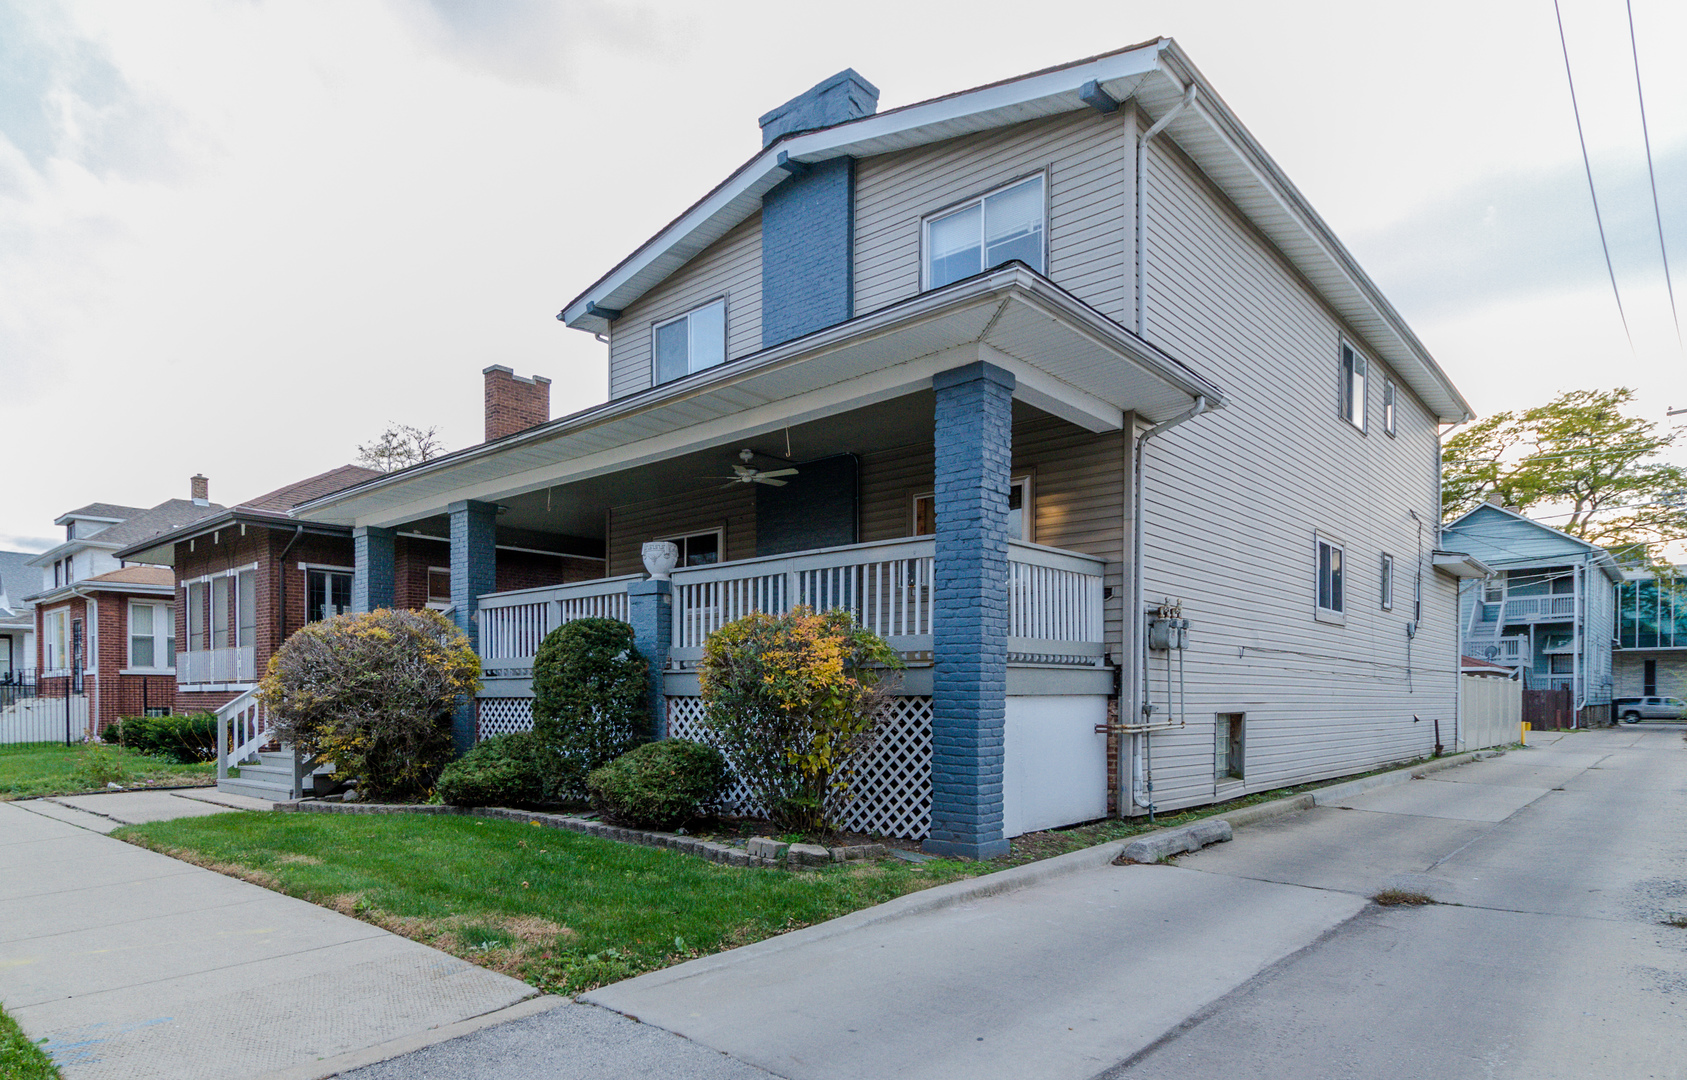 7514 South Chappel, CHICAGO, Illinois, 60649